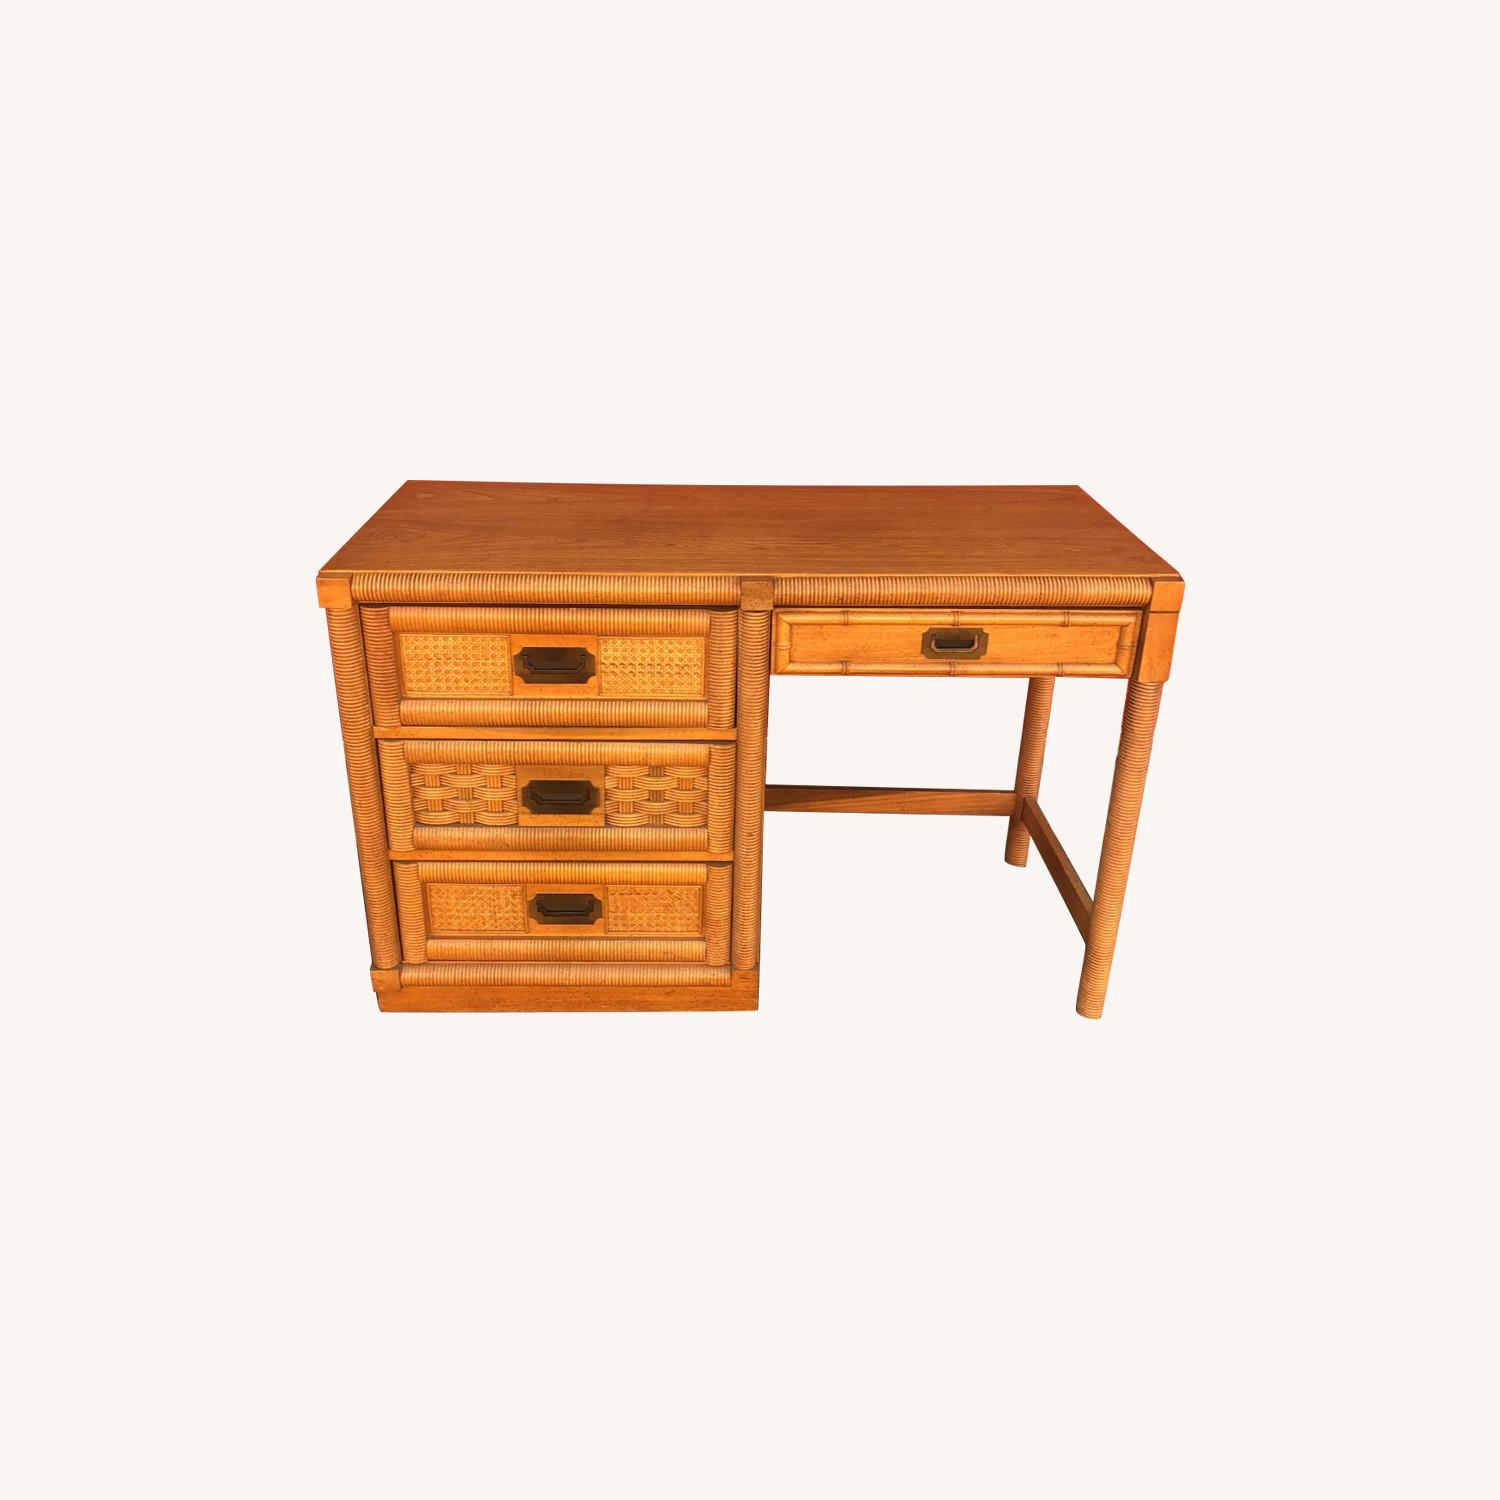 Vintage Campaign Style Writing Desk with 4 Drawers - image-0